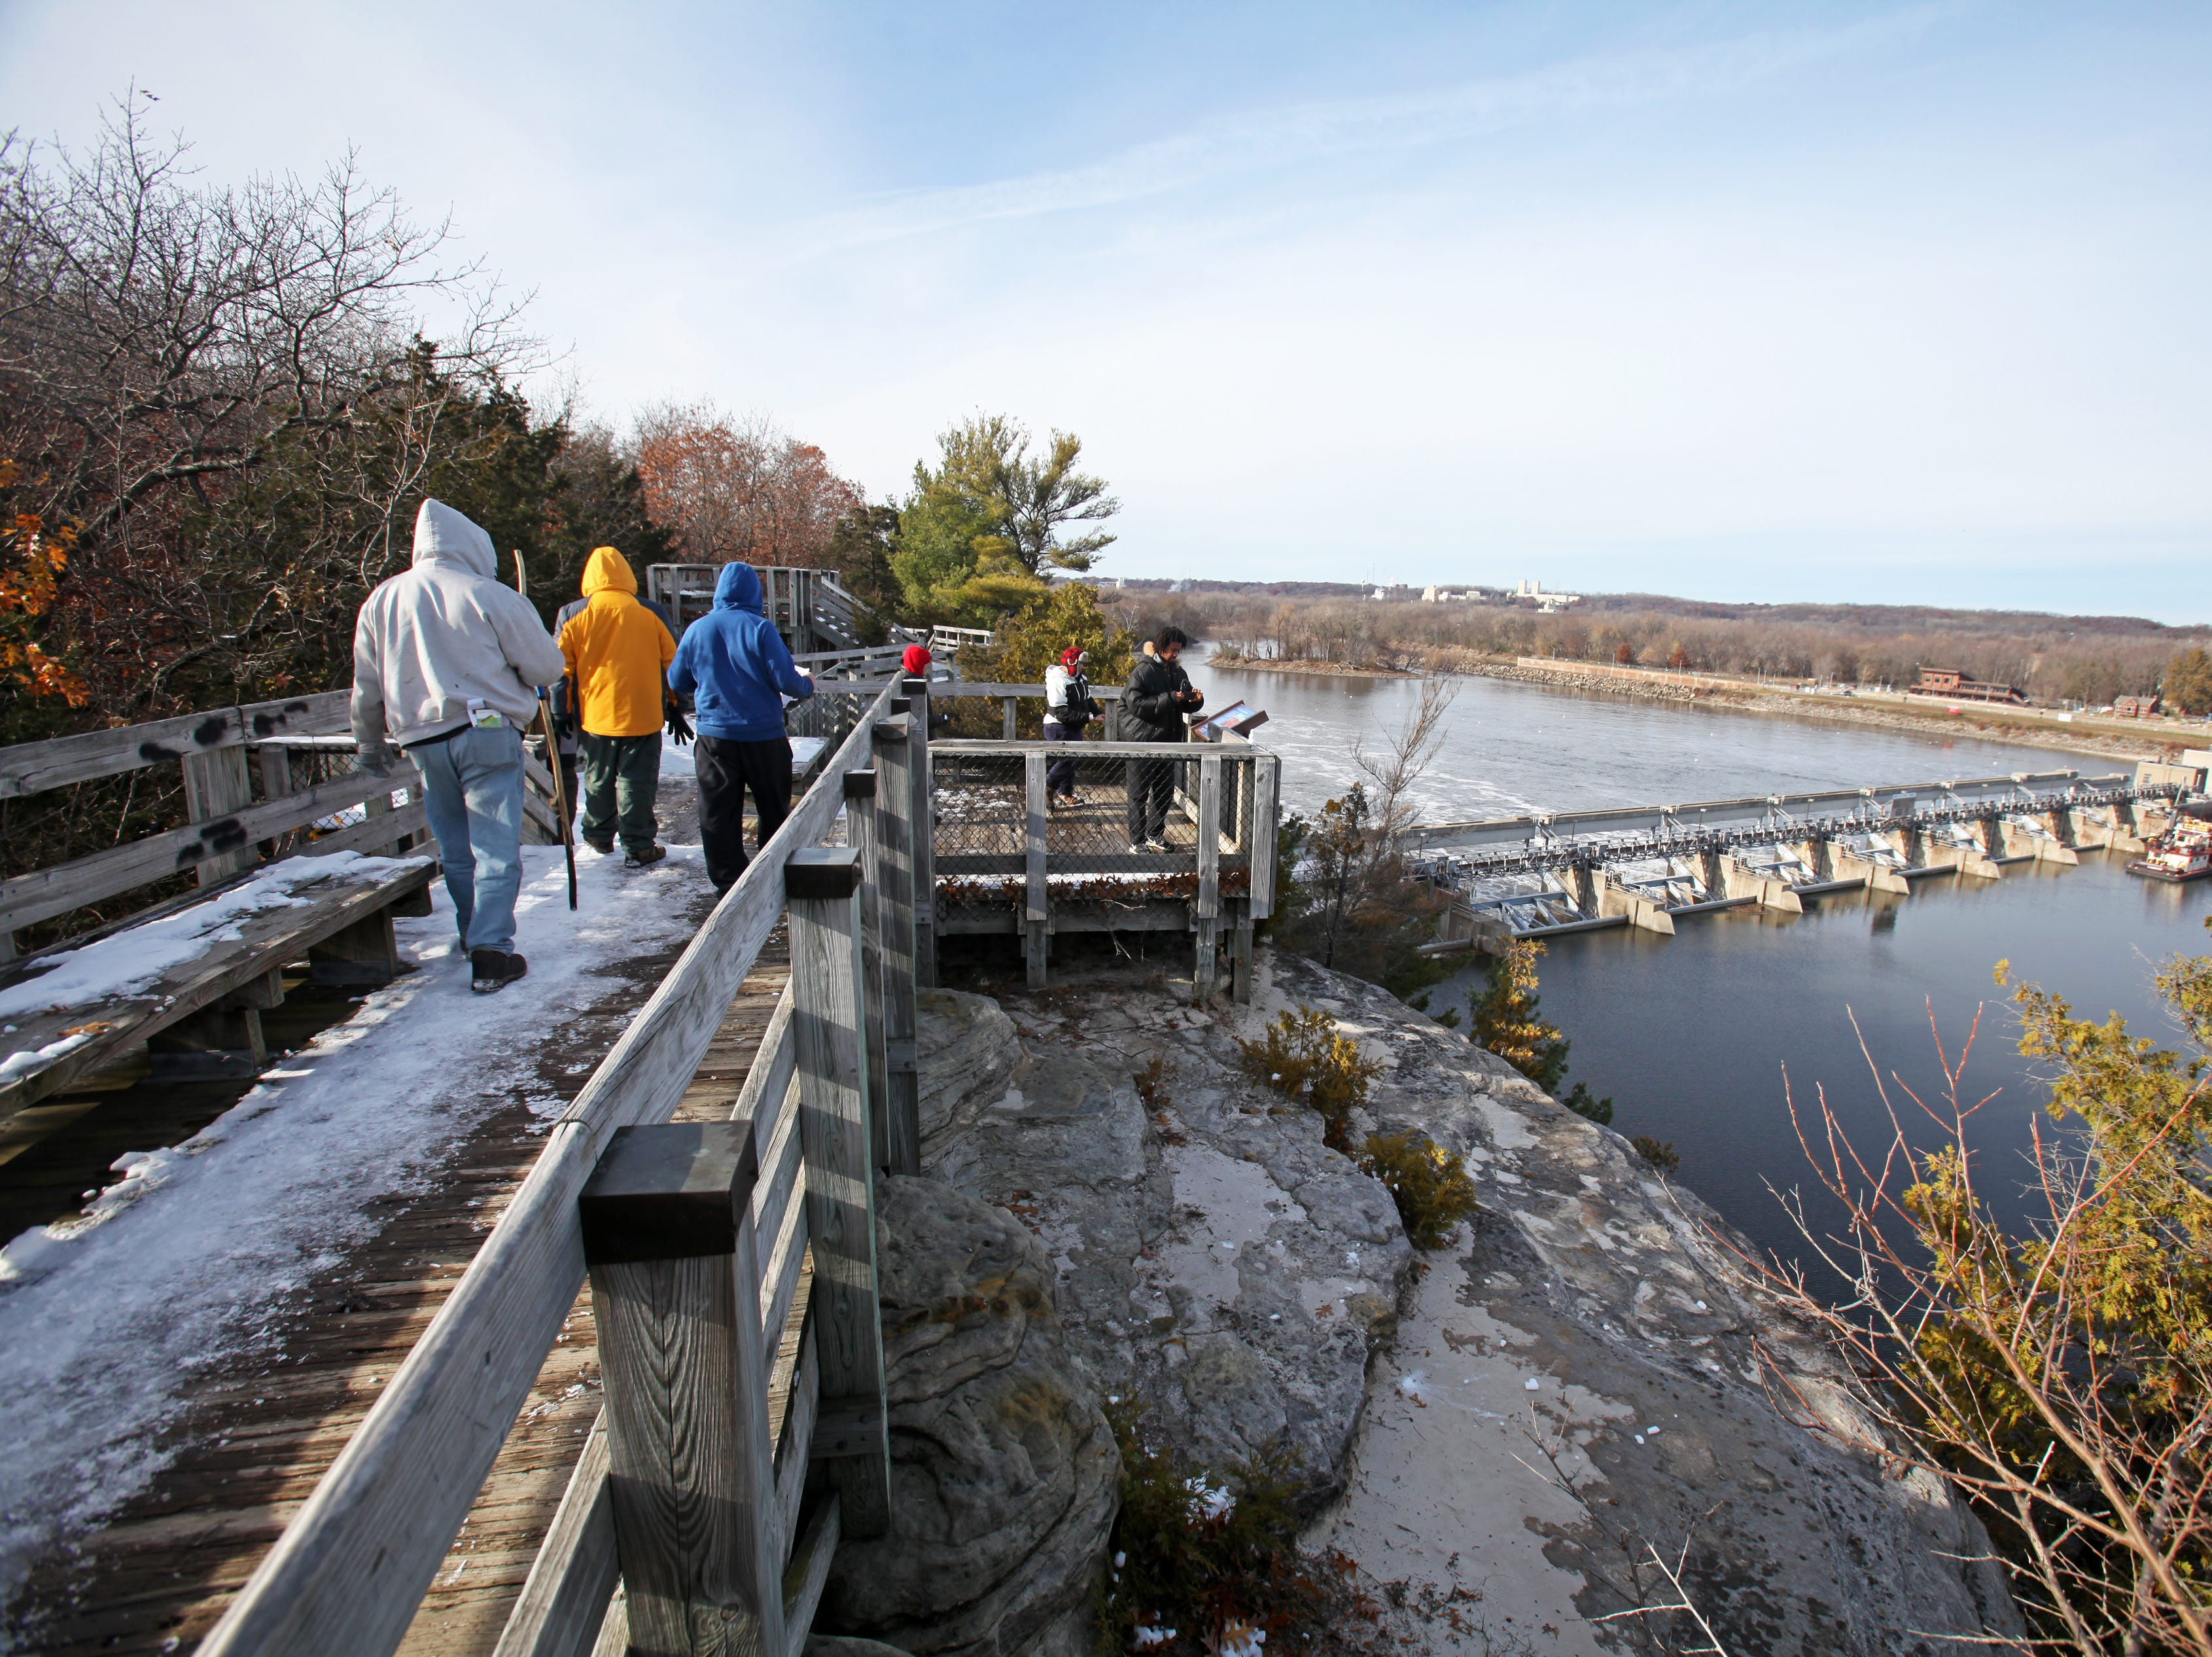 Hikers take in a view of a lock and dam along the Illinois River from the Eagle Cliff Overlook in Starved Rock State Park near Utica, Illinois.